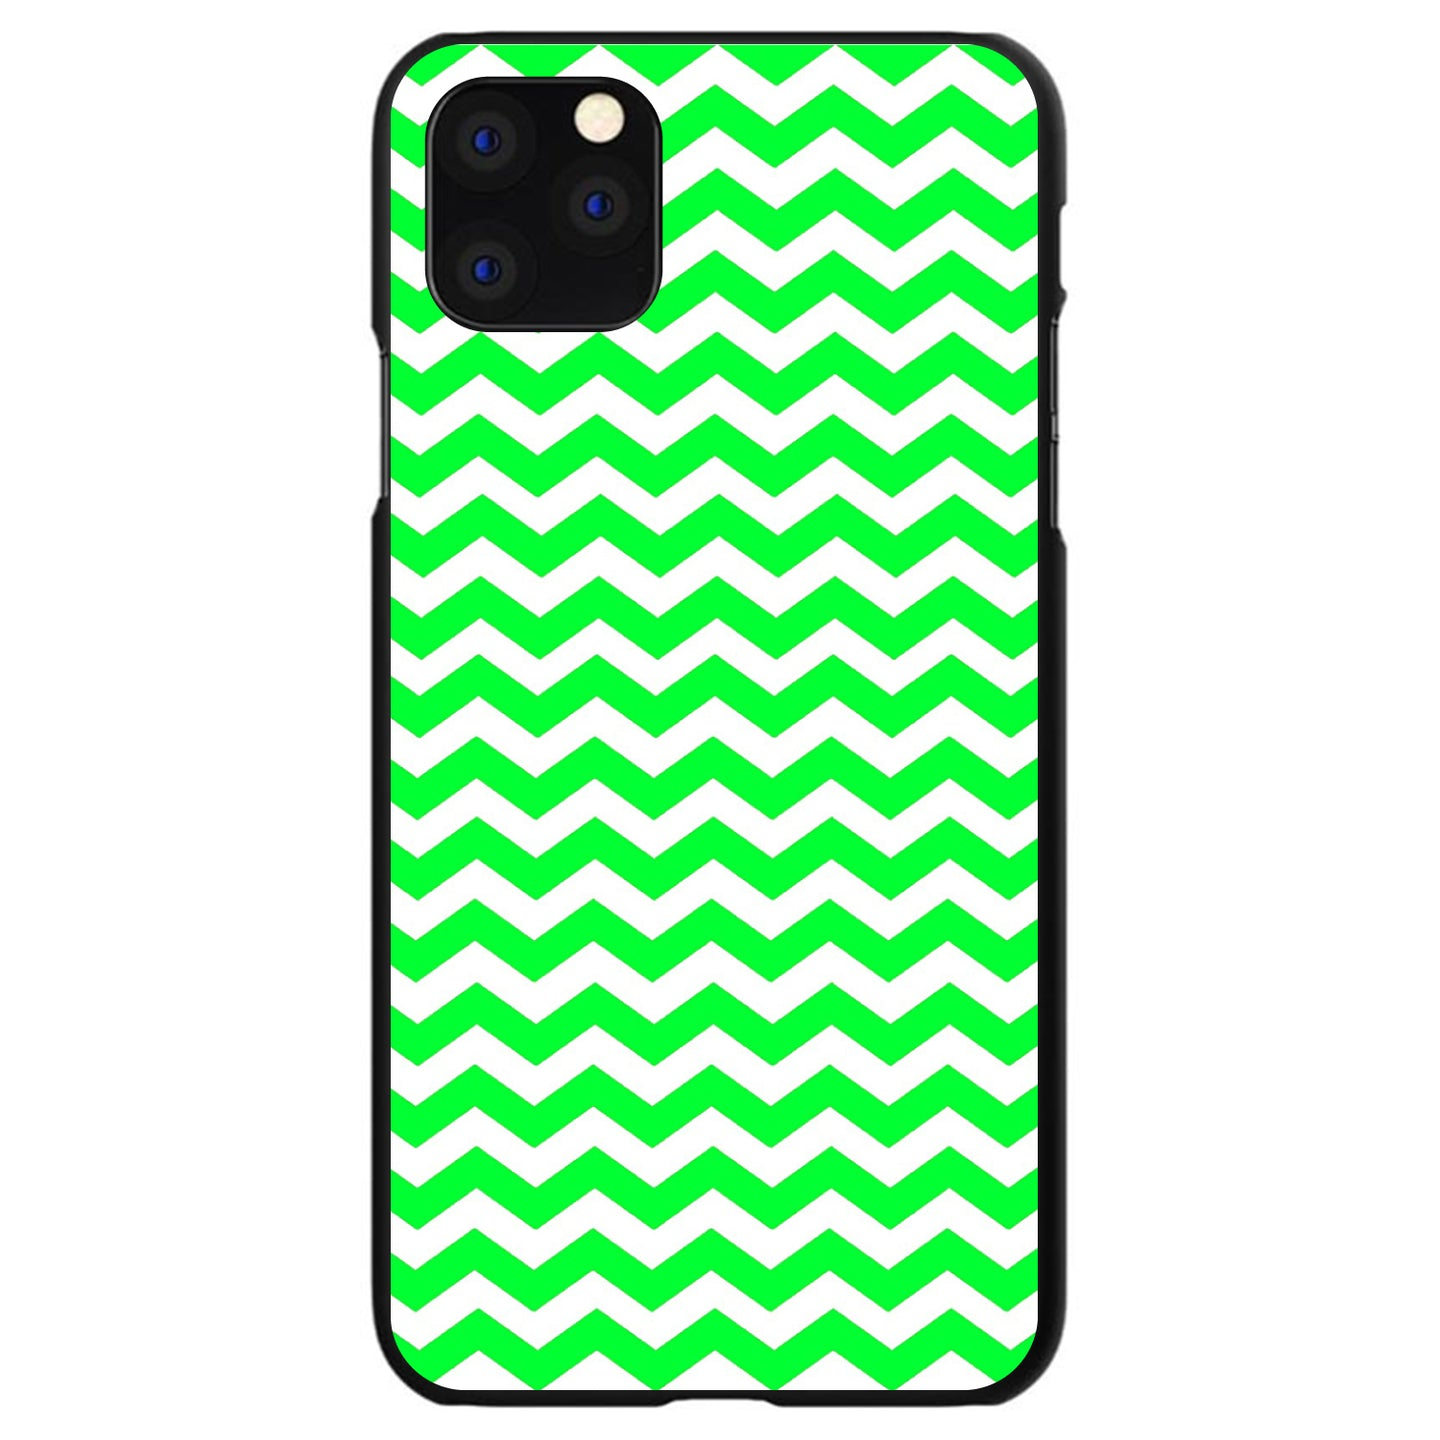 DistinctInk® Hard Plastic Snap-On Case for Apple iPhone - Green White Chevron Stripes Wave